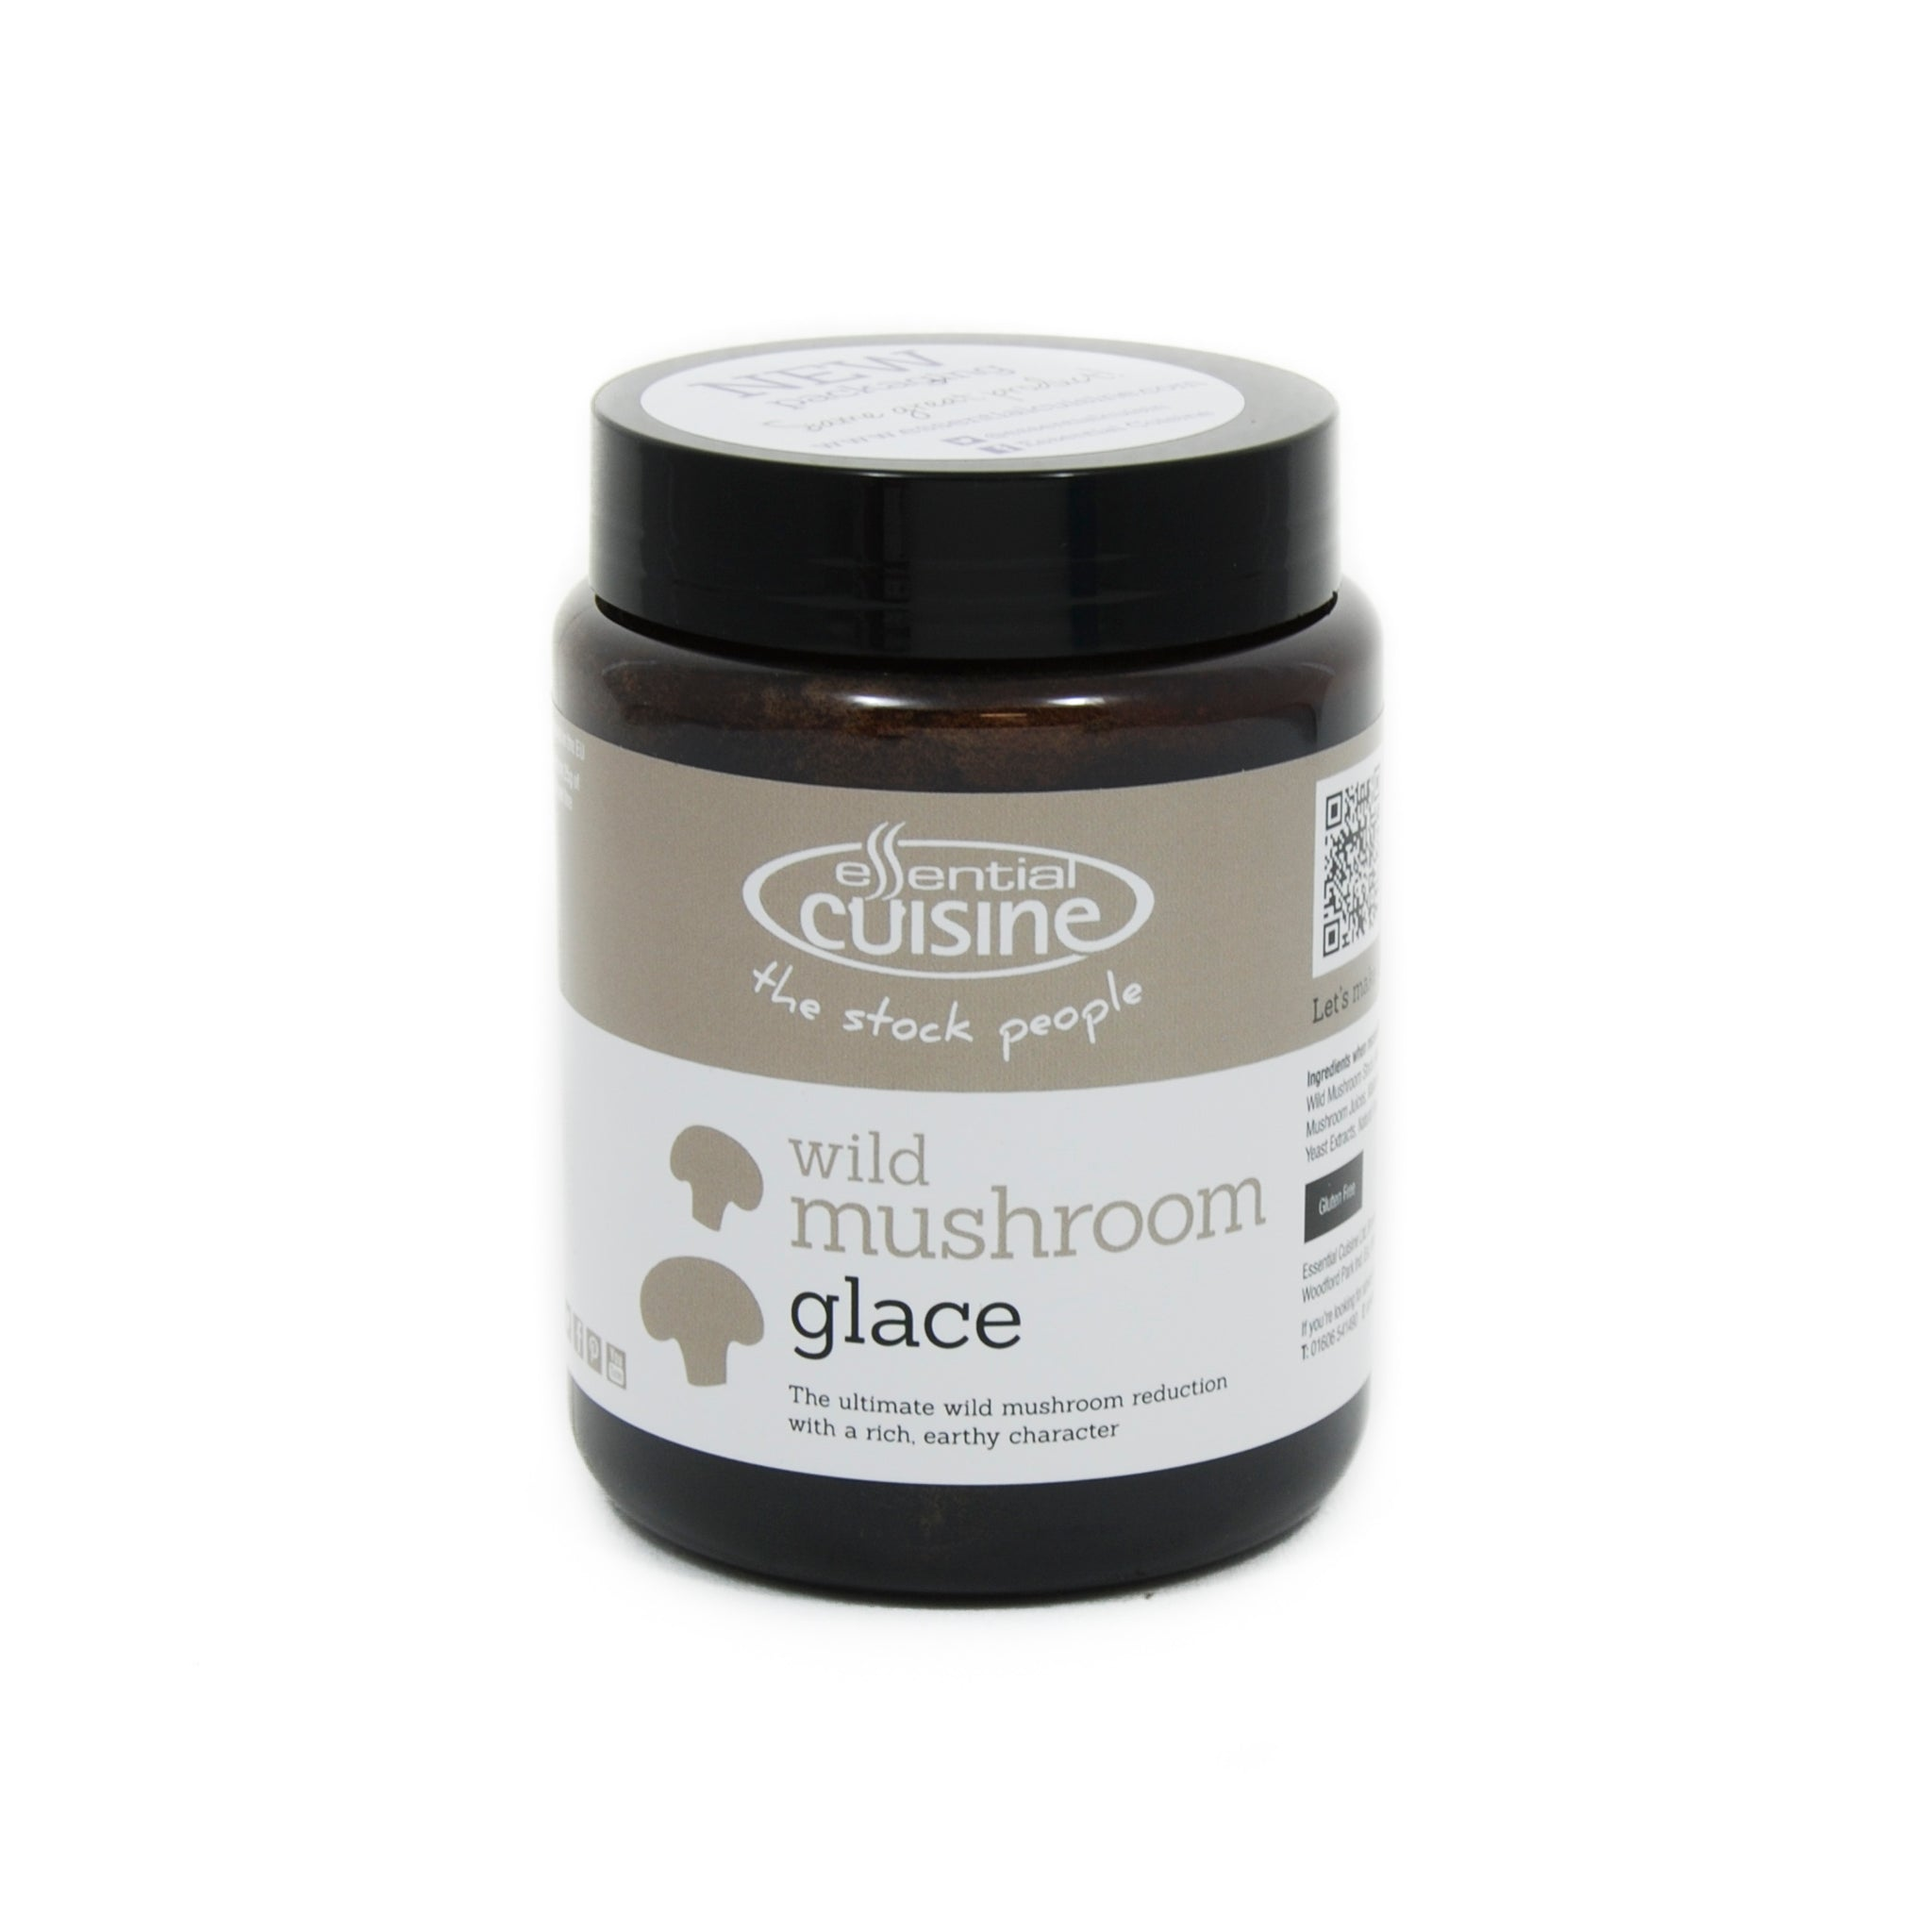 Essential Cuisine Wild Mushroom Glace 600g Ingredients Mushrooms & Truffles